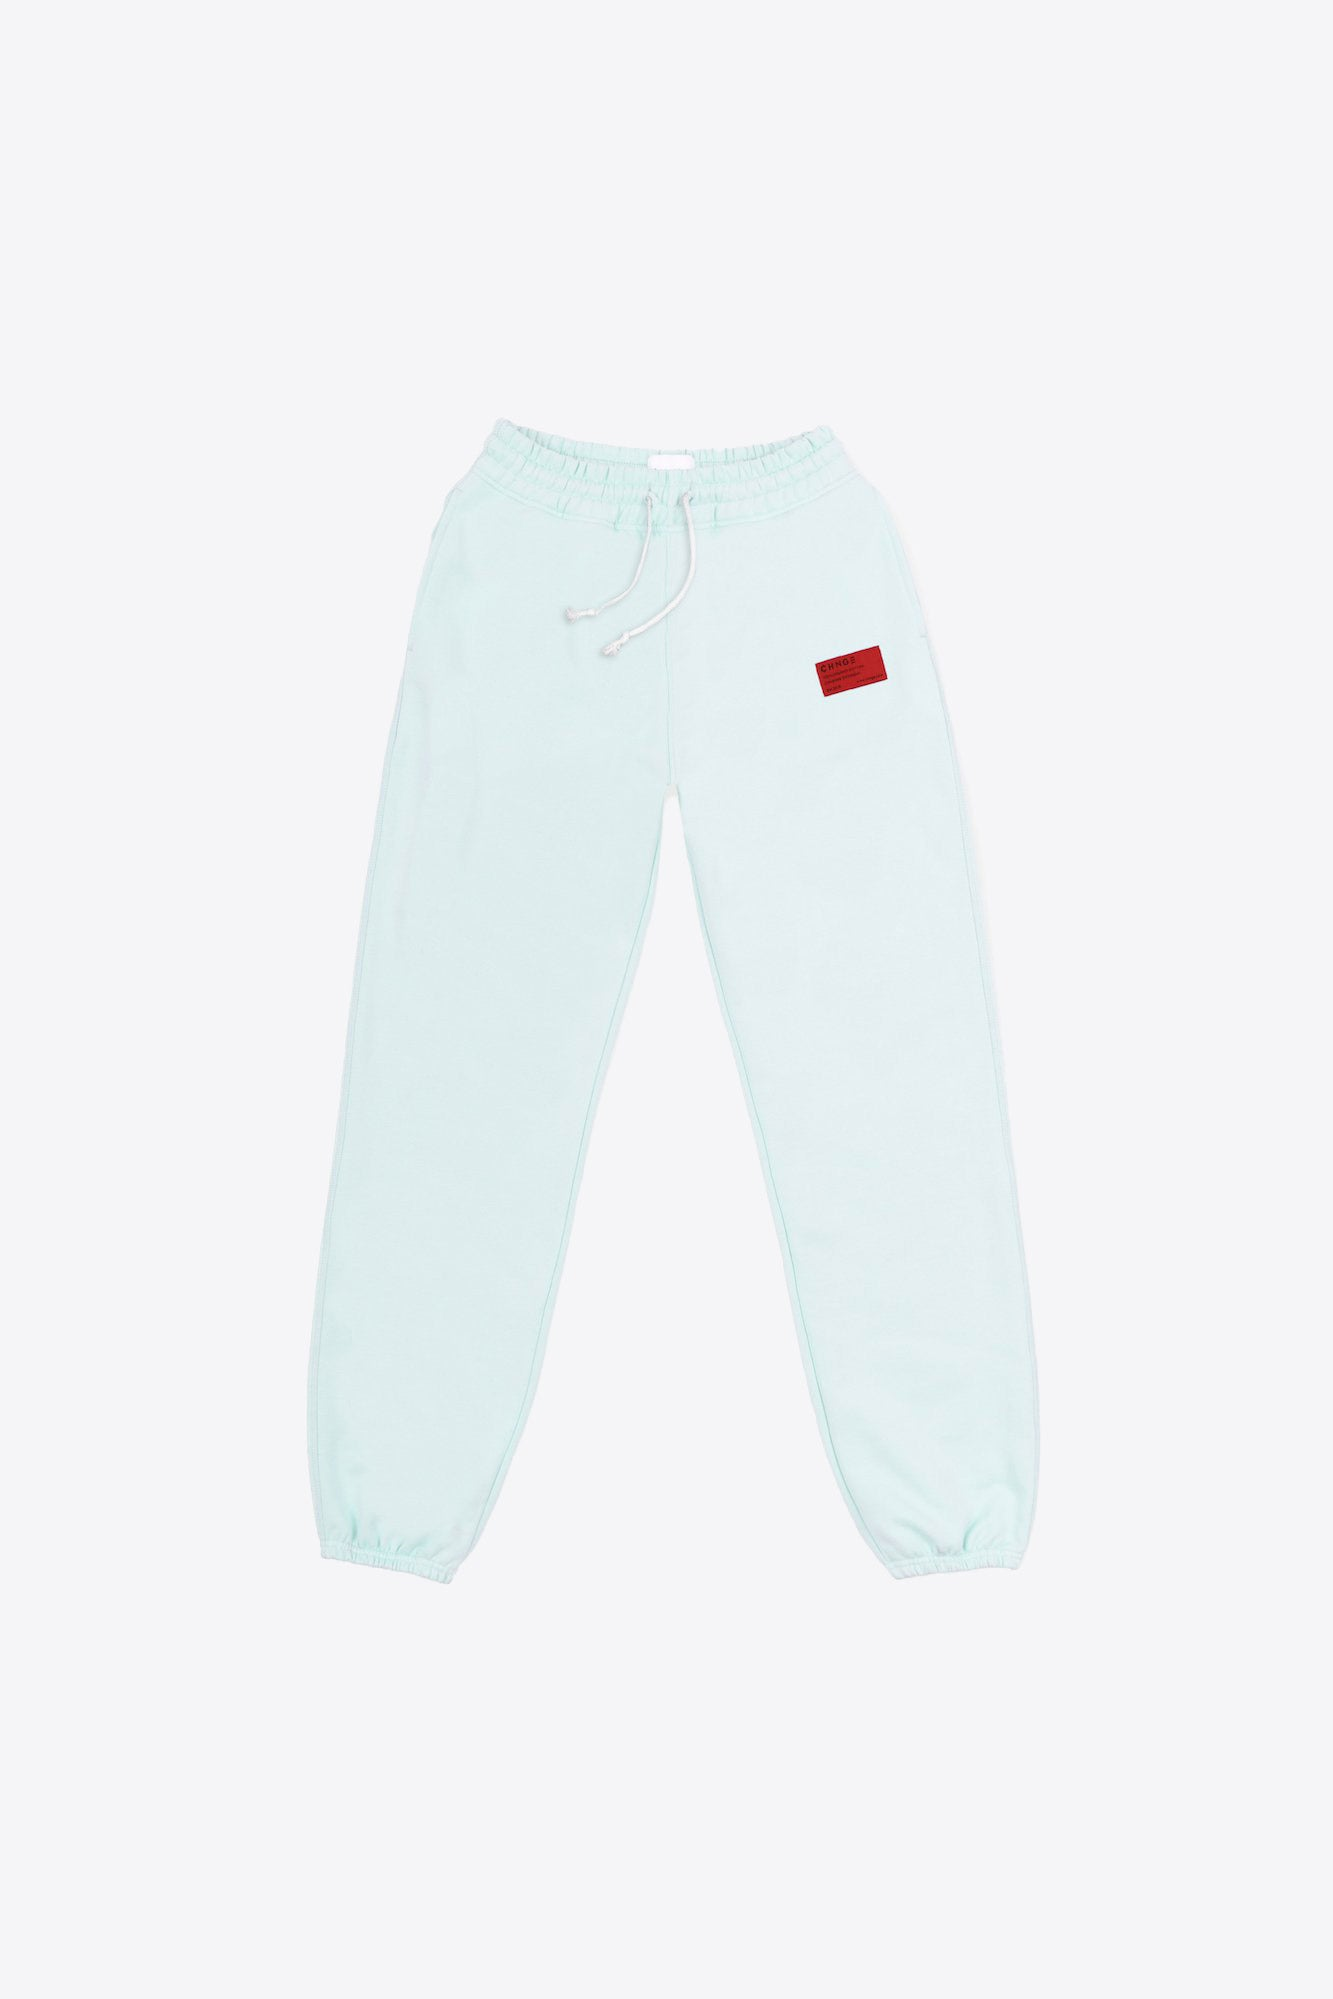 Mint Worldwide Sweatpant